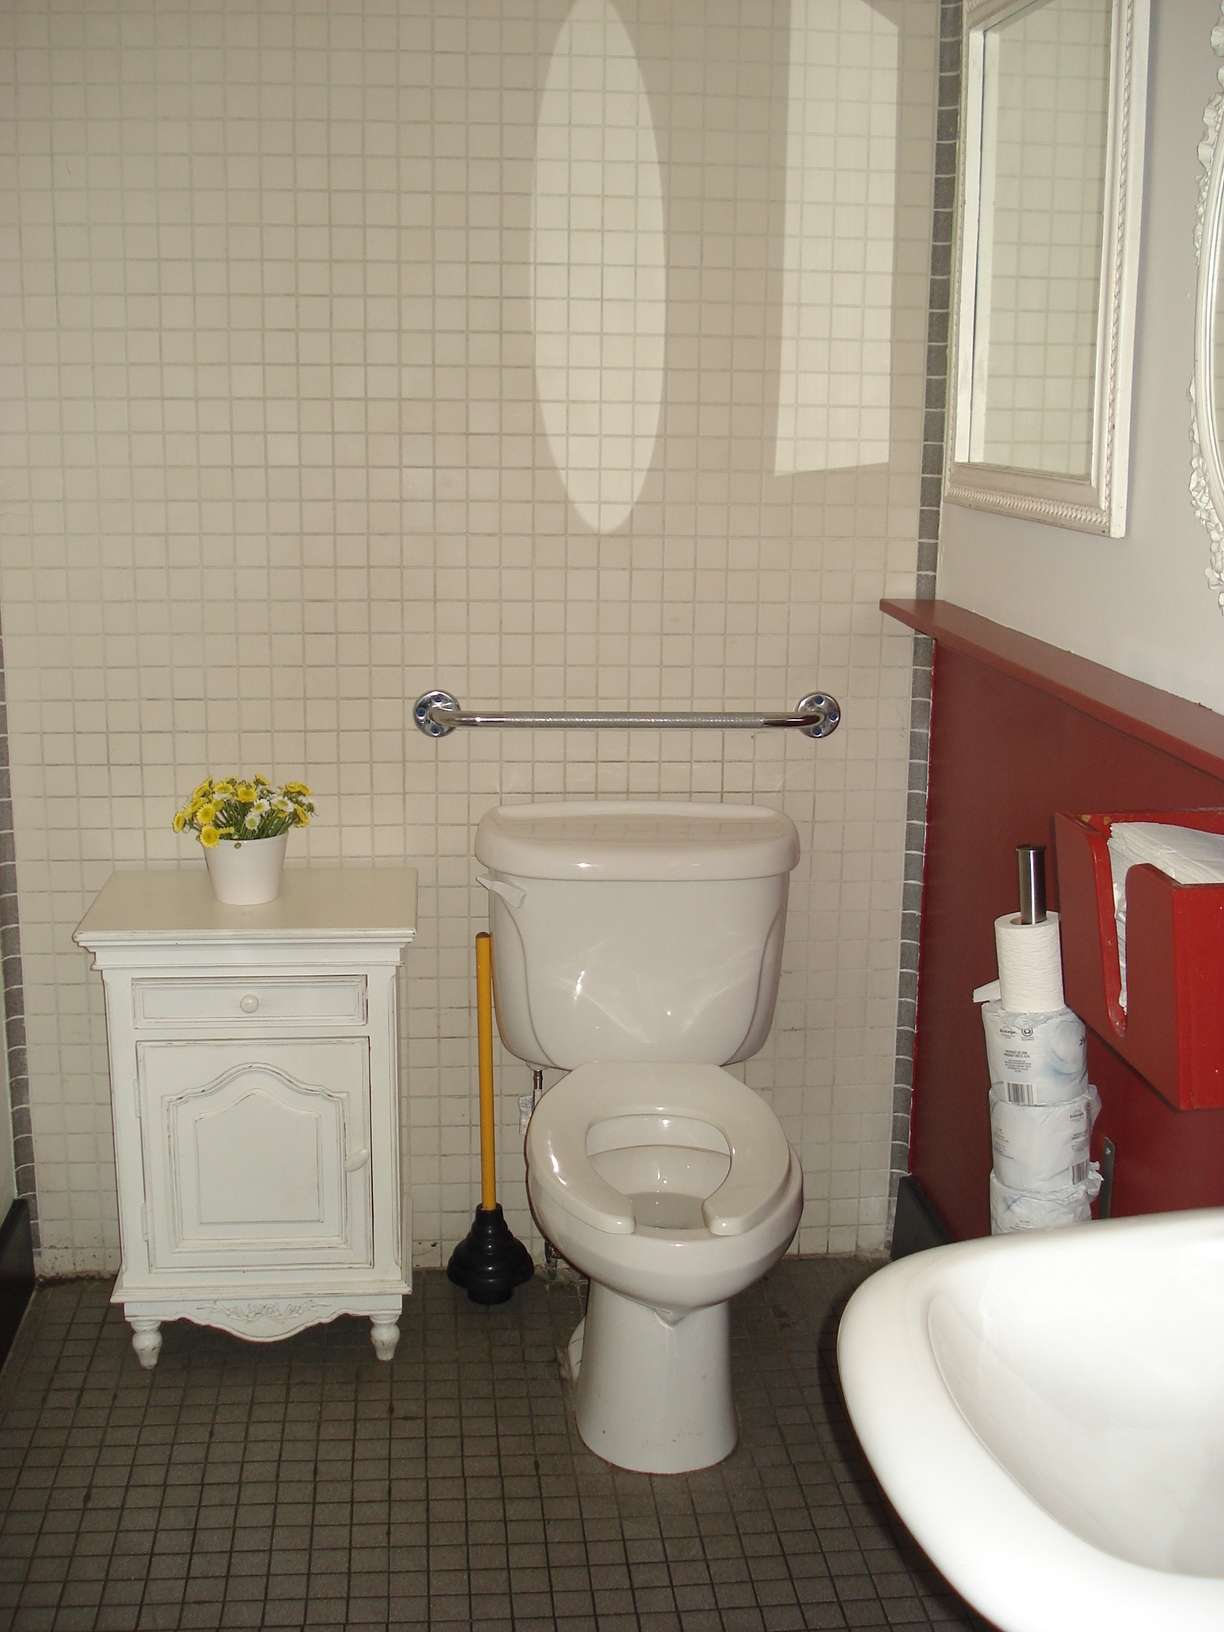 Picture of accessible washroom. Grab bar above toilet tank.